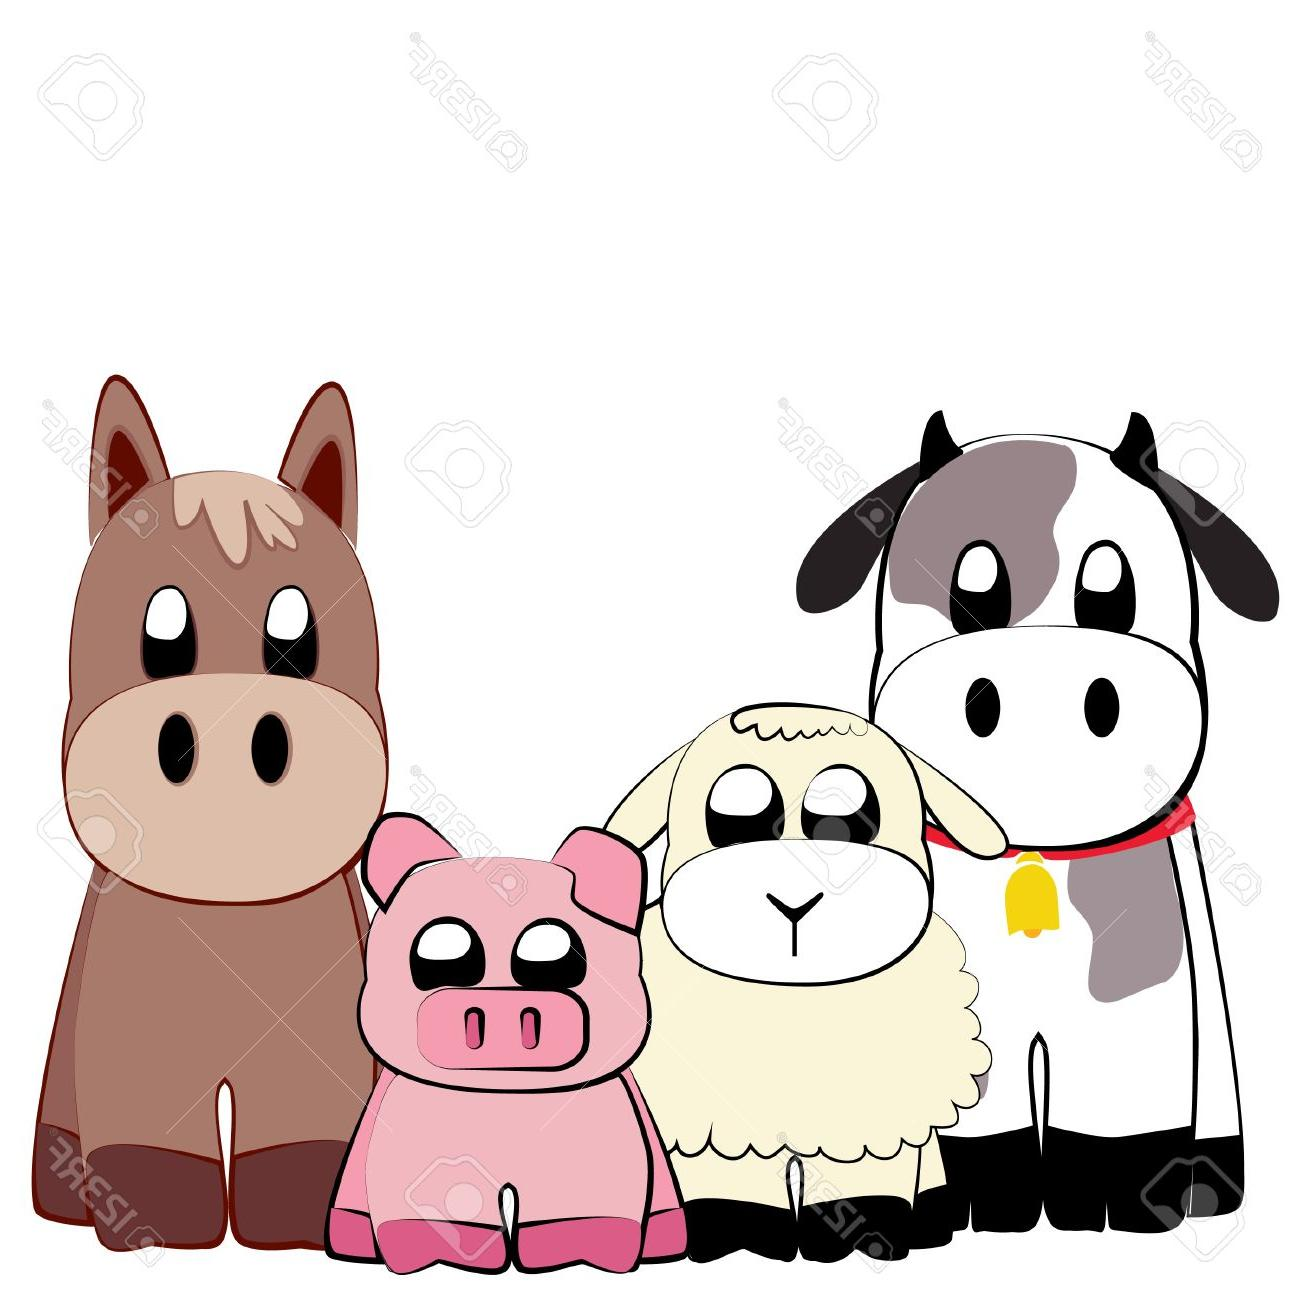 1300x1295 Best Hd Cute Farm Animals Illustration Stock Vector Cartoon Animal Cdr